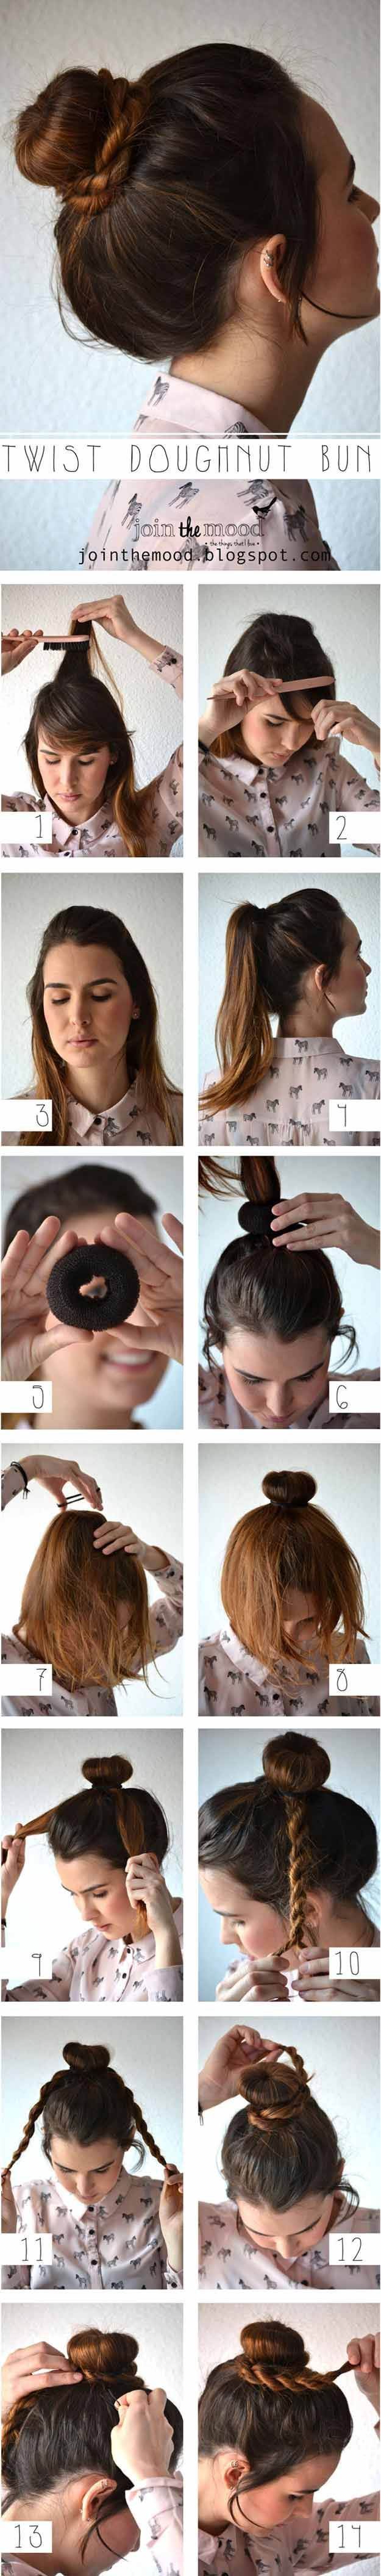 best hairstyles for teens hairstyles pinterest doughnut bun